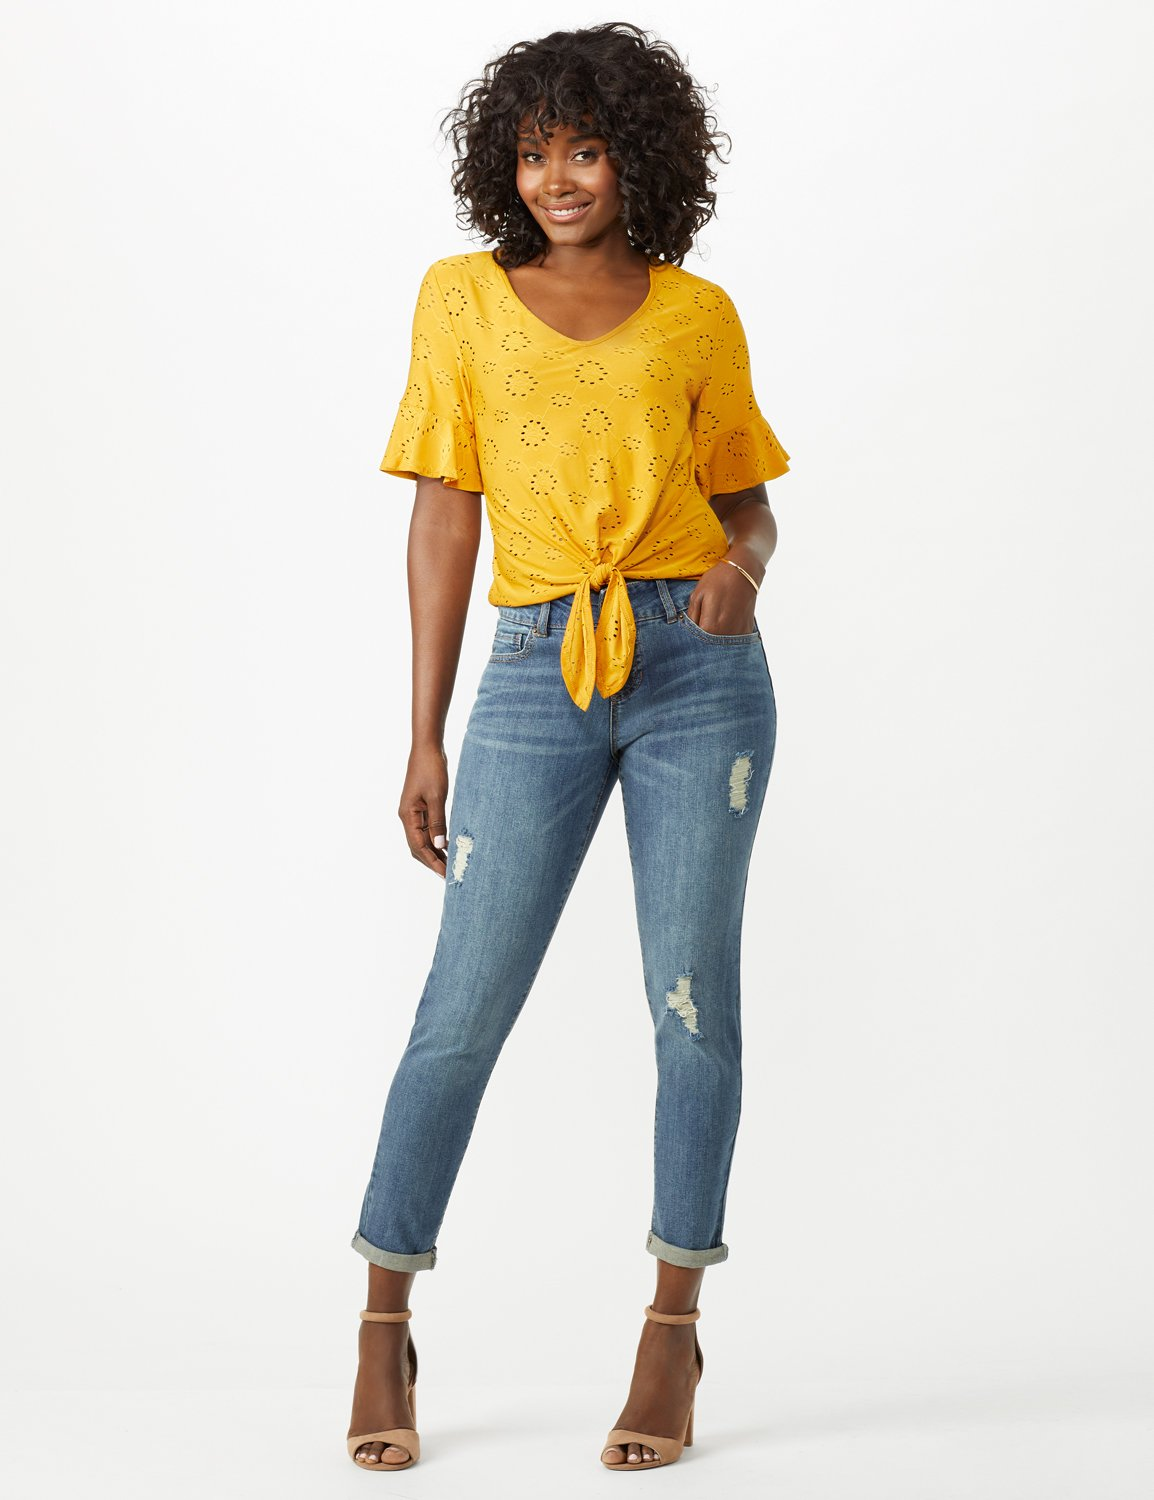 2 Button Waistband Jean, Ankle Length Mid Rise Skinny -Med Stone Wash - Front